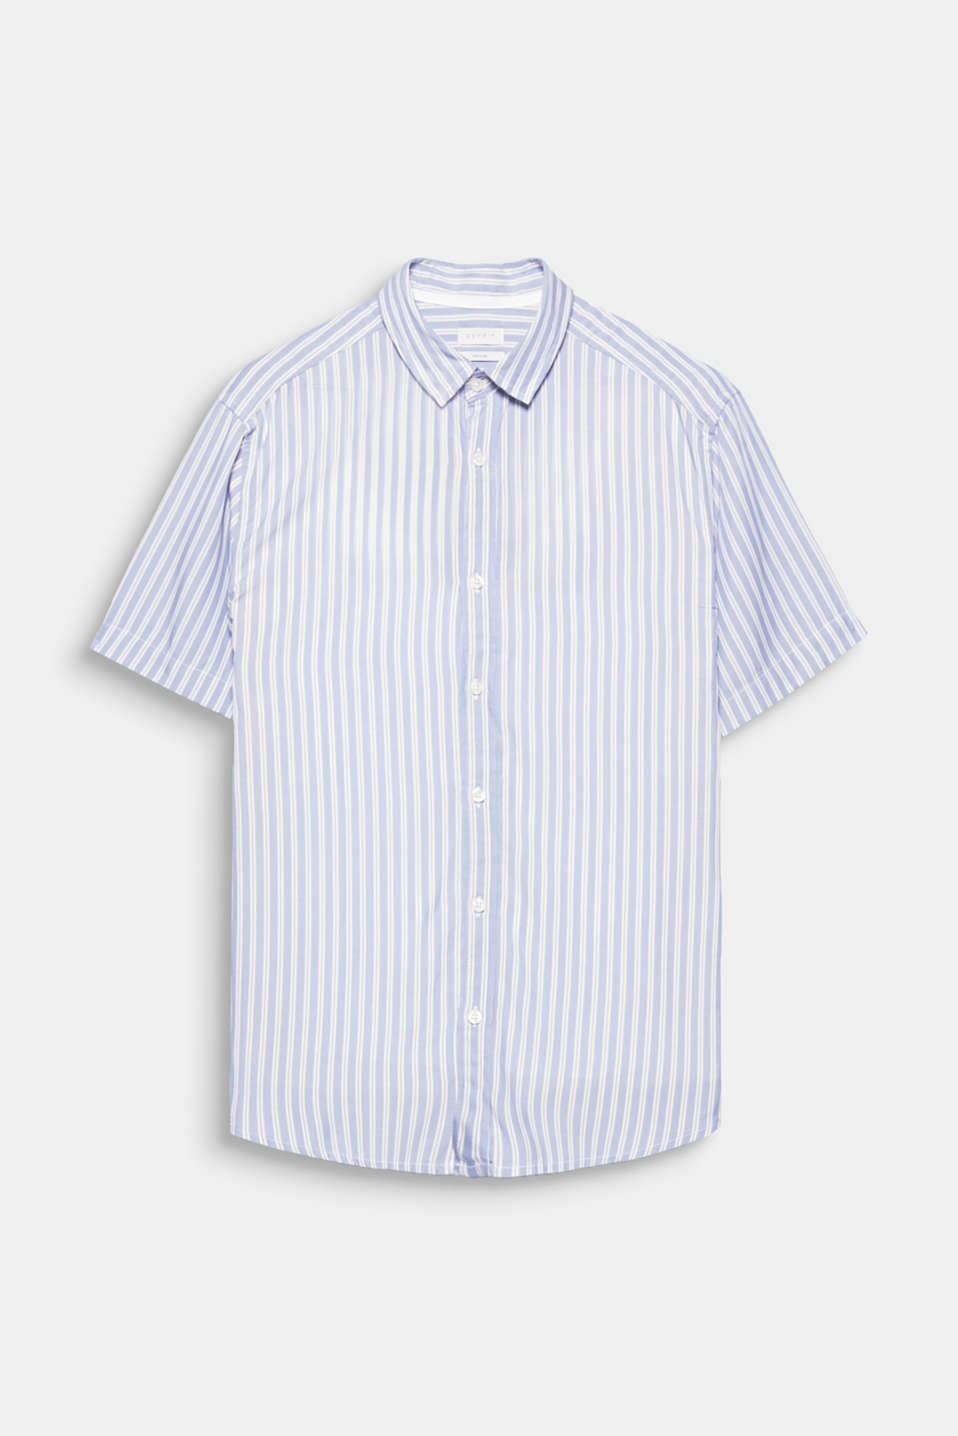 The delicate and smooth pure viscose fabric and the sporty vertical striped look gives this short sleeve shirt a modern, summery look.